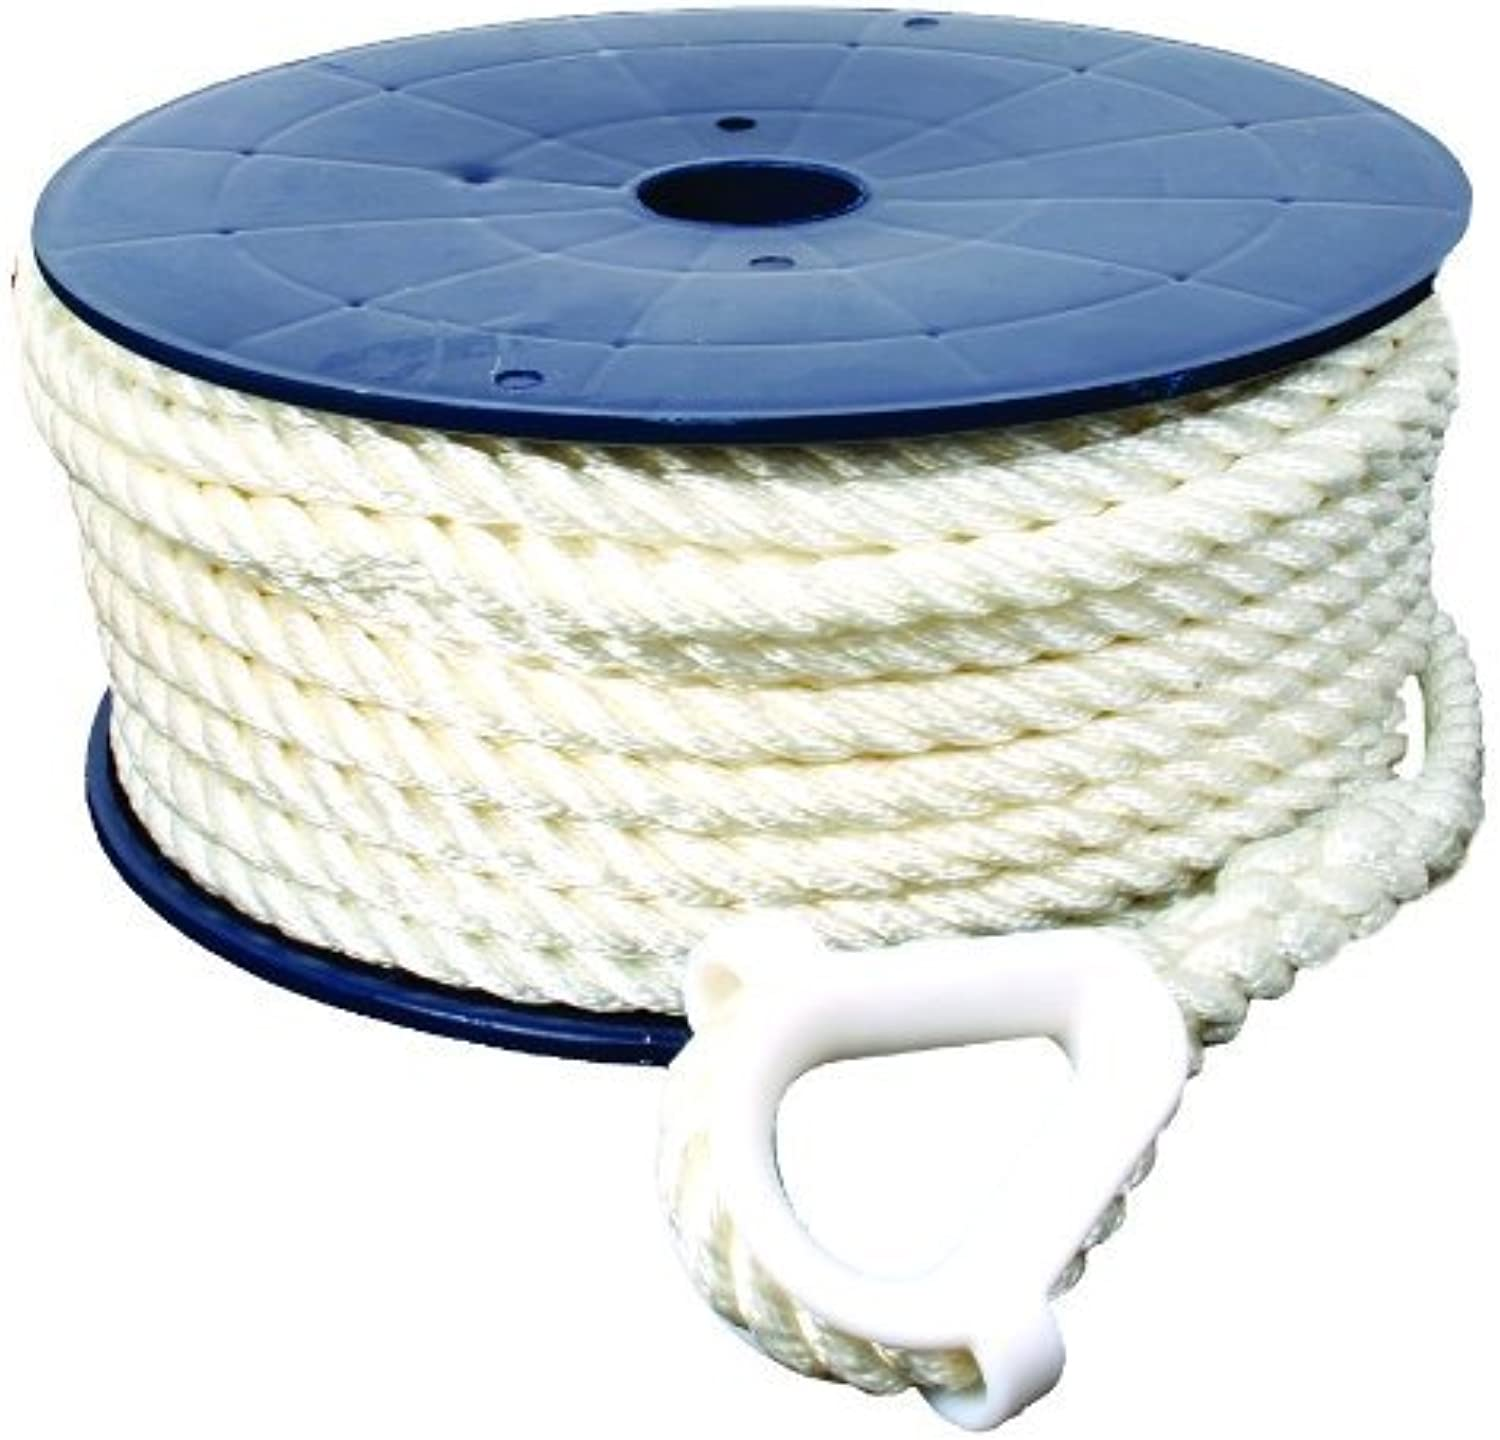 Invincible Marine 150Foot Twisted Nylon Anchor Line, 3 8Inches by 150Feet, White by Invincible Marine